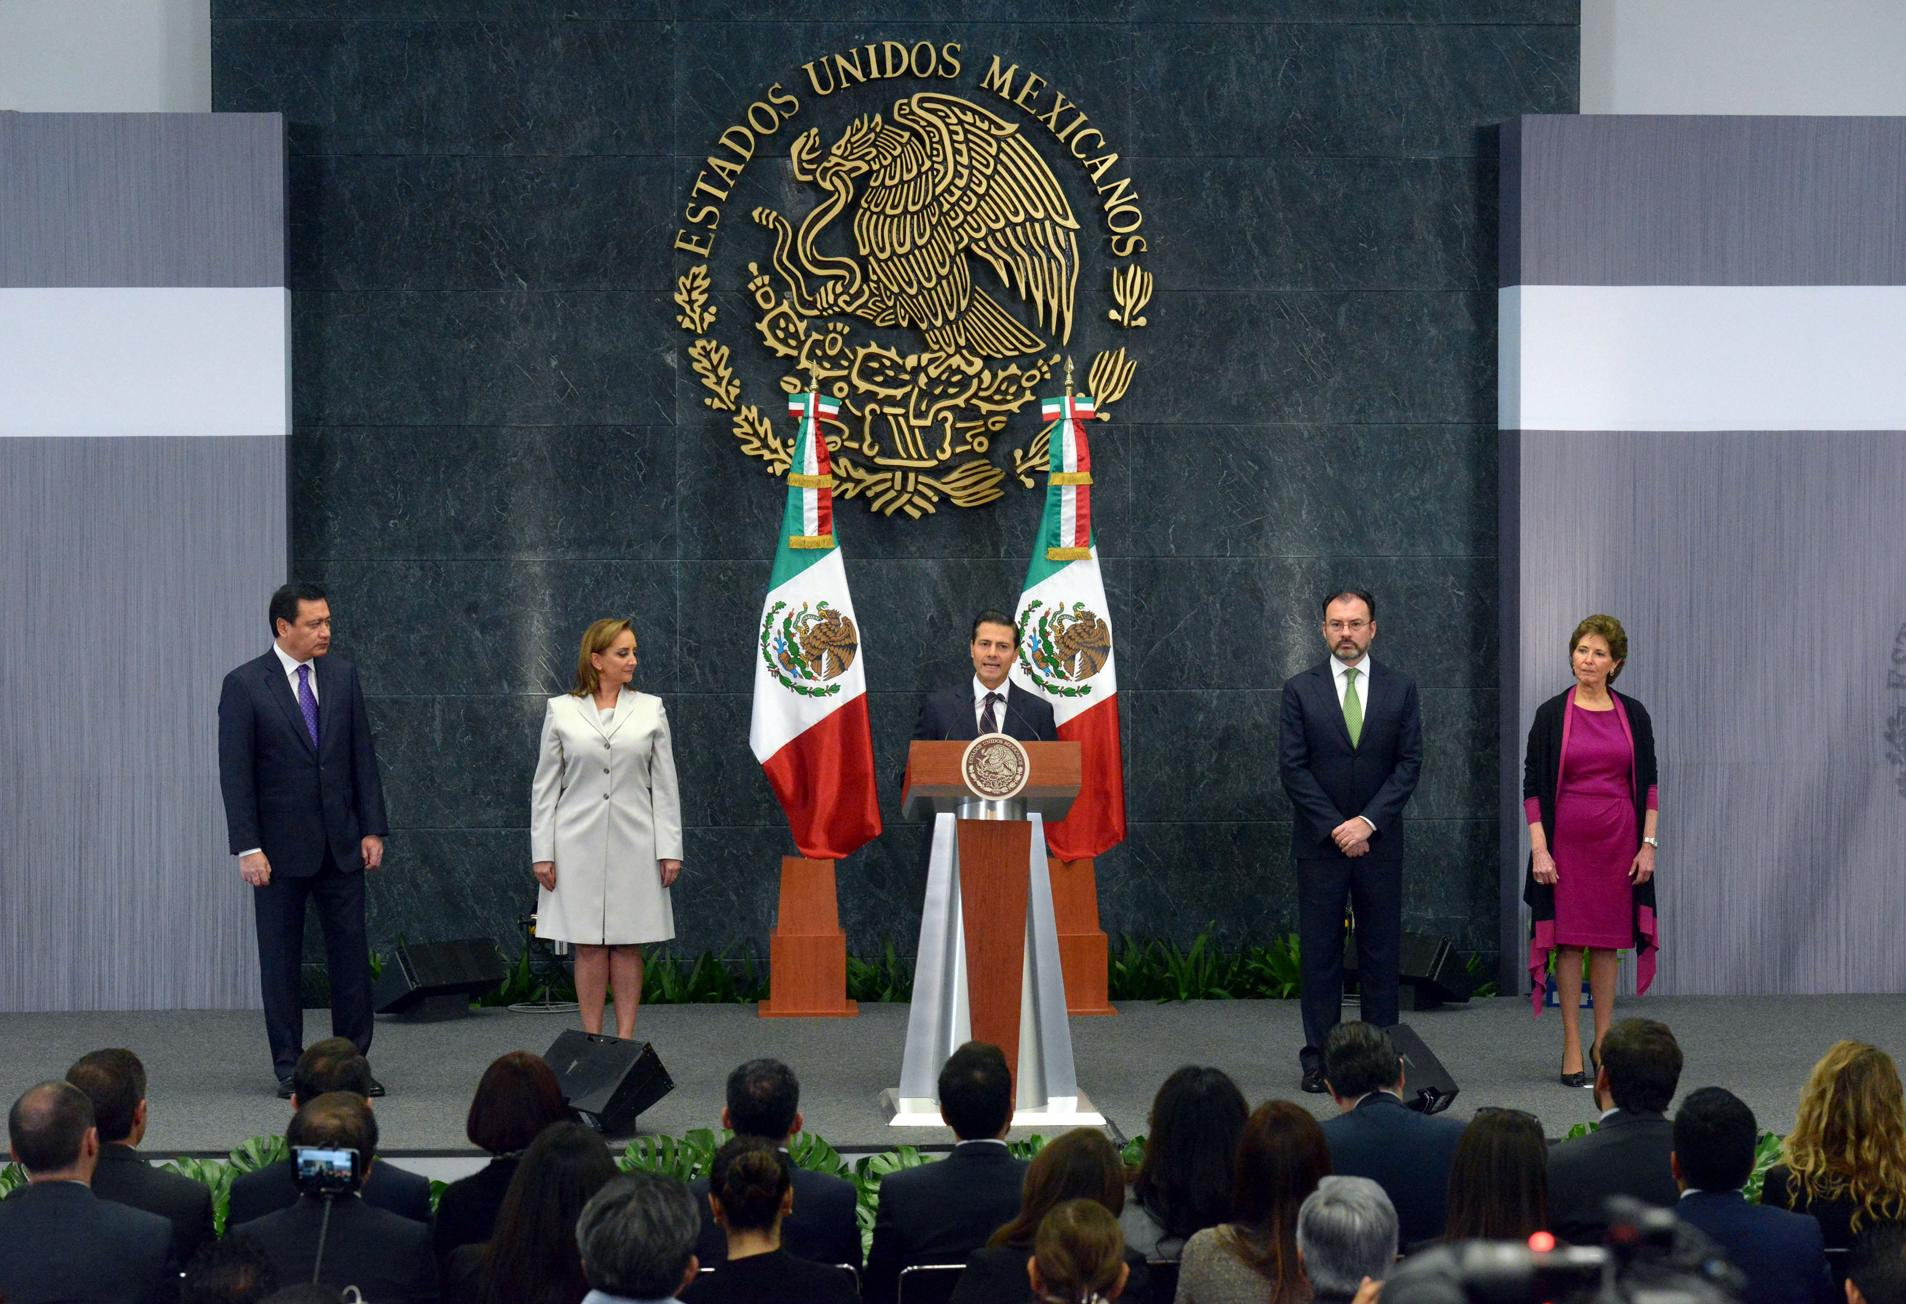 As for the new Secretary of Culture, President Peña Nieto said that Maria Cristina García Cepeda has spent over 30 years contributing to our country's cultural policy.